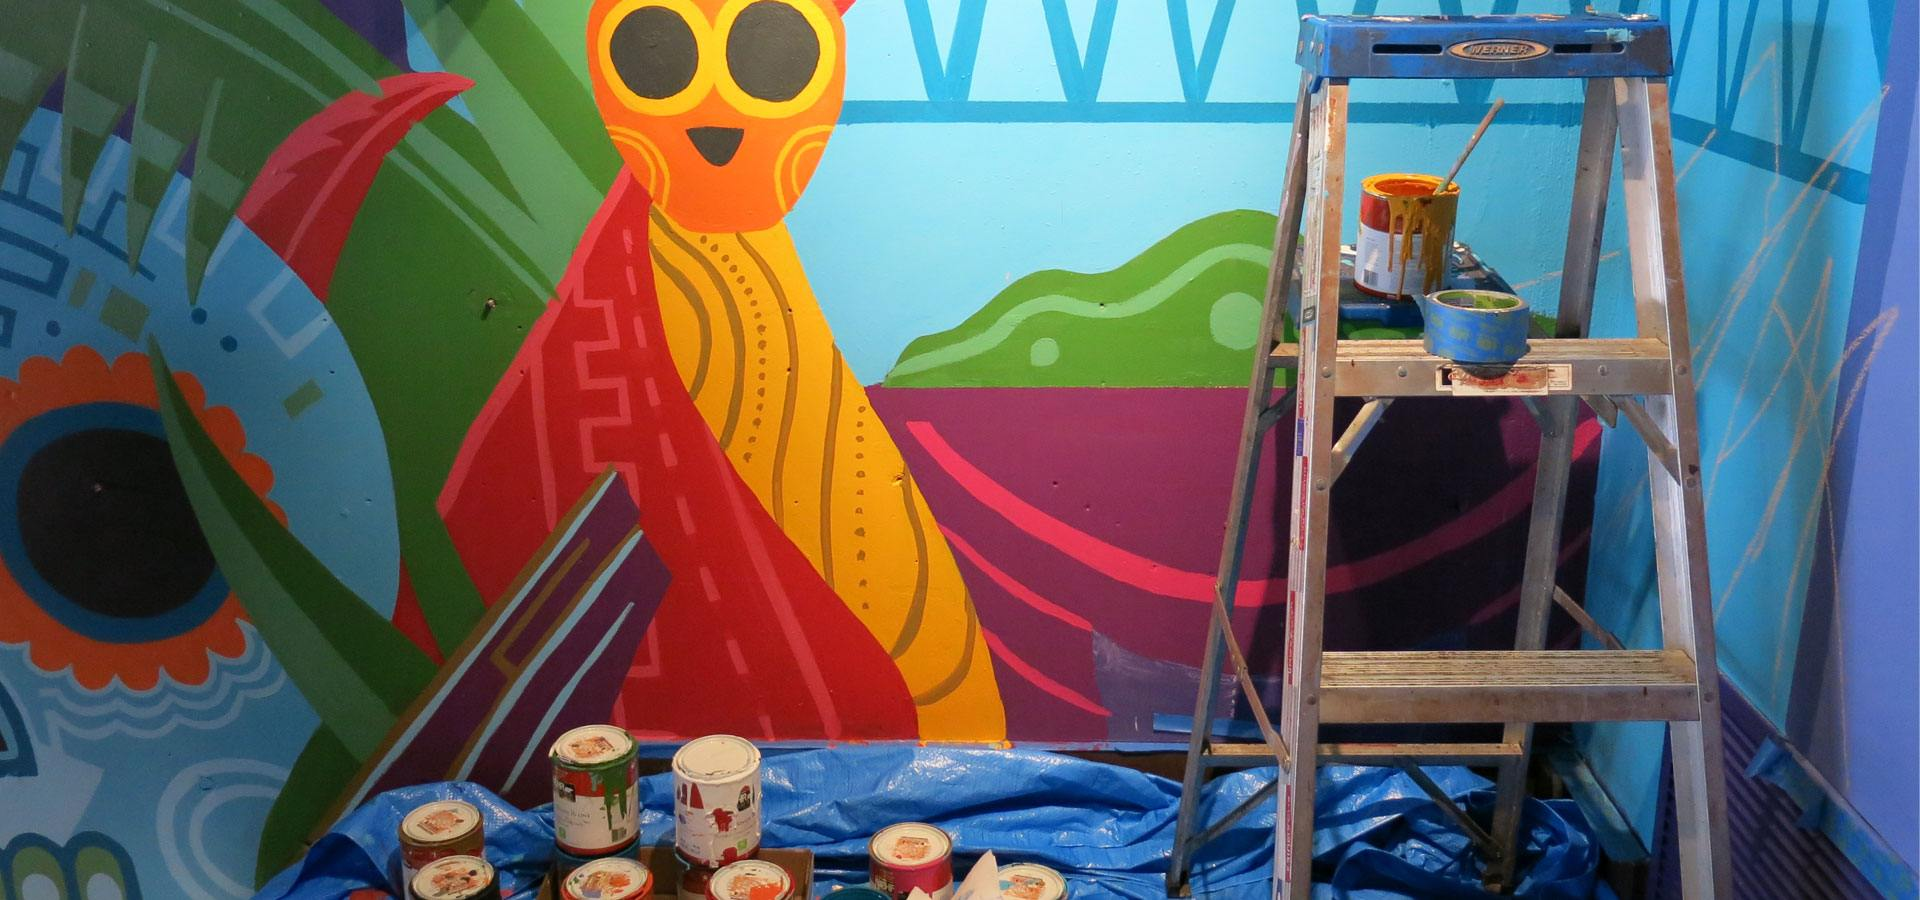 A decorative mural inspired by Mexican iconography in progress